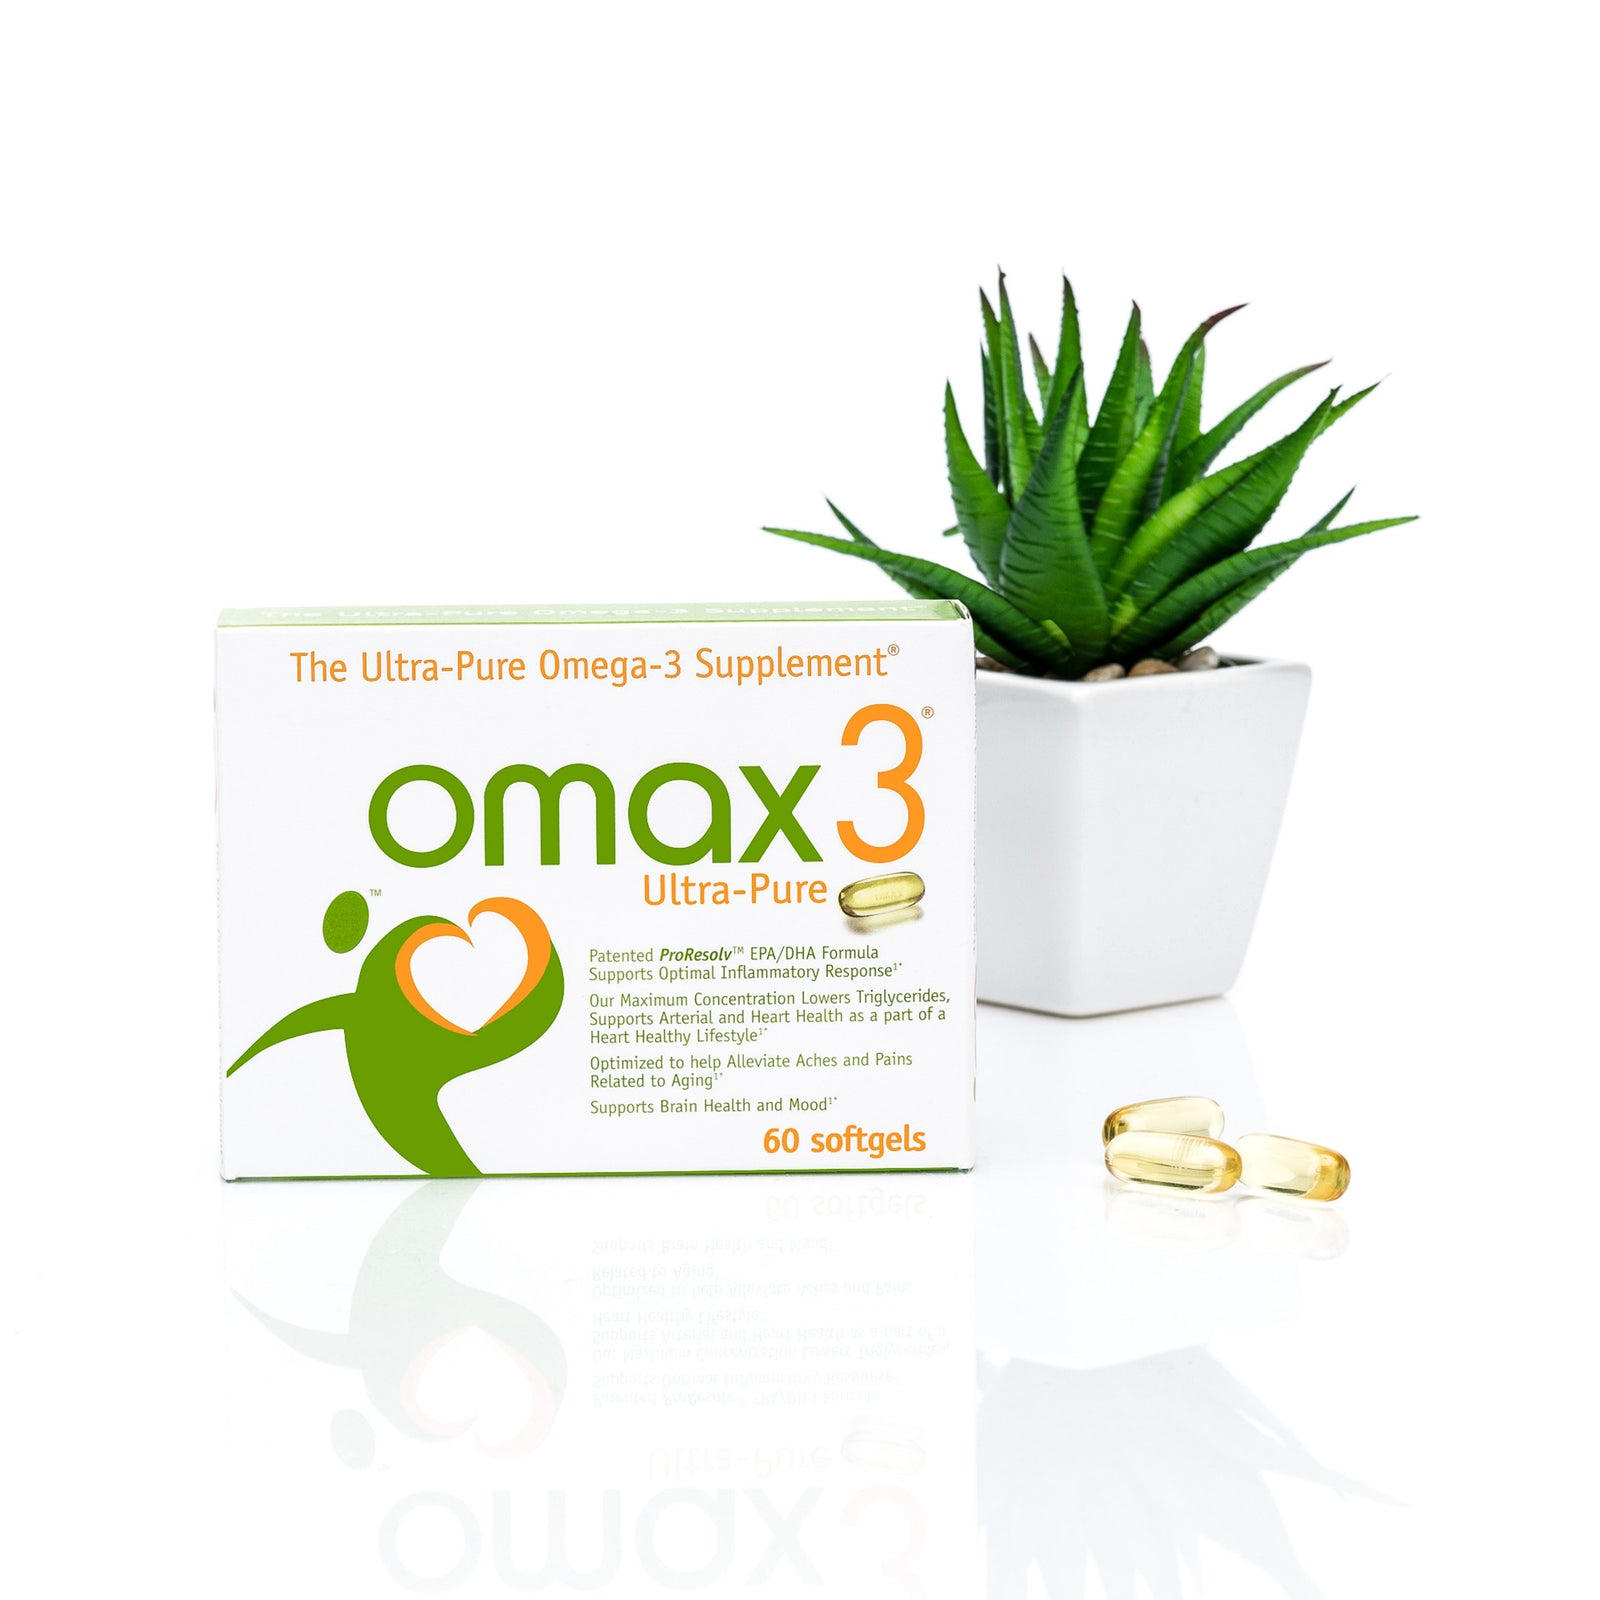 Omax3 Ultra-Pure Omega-3 with softgels